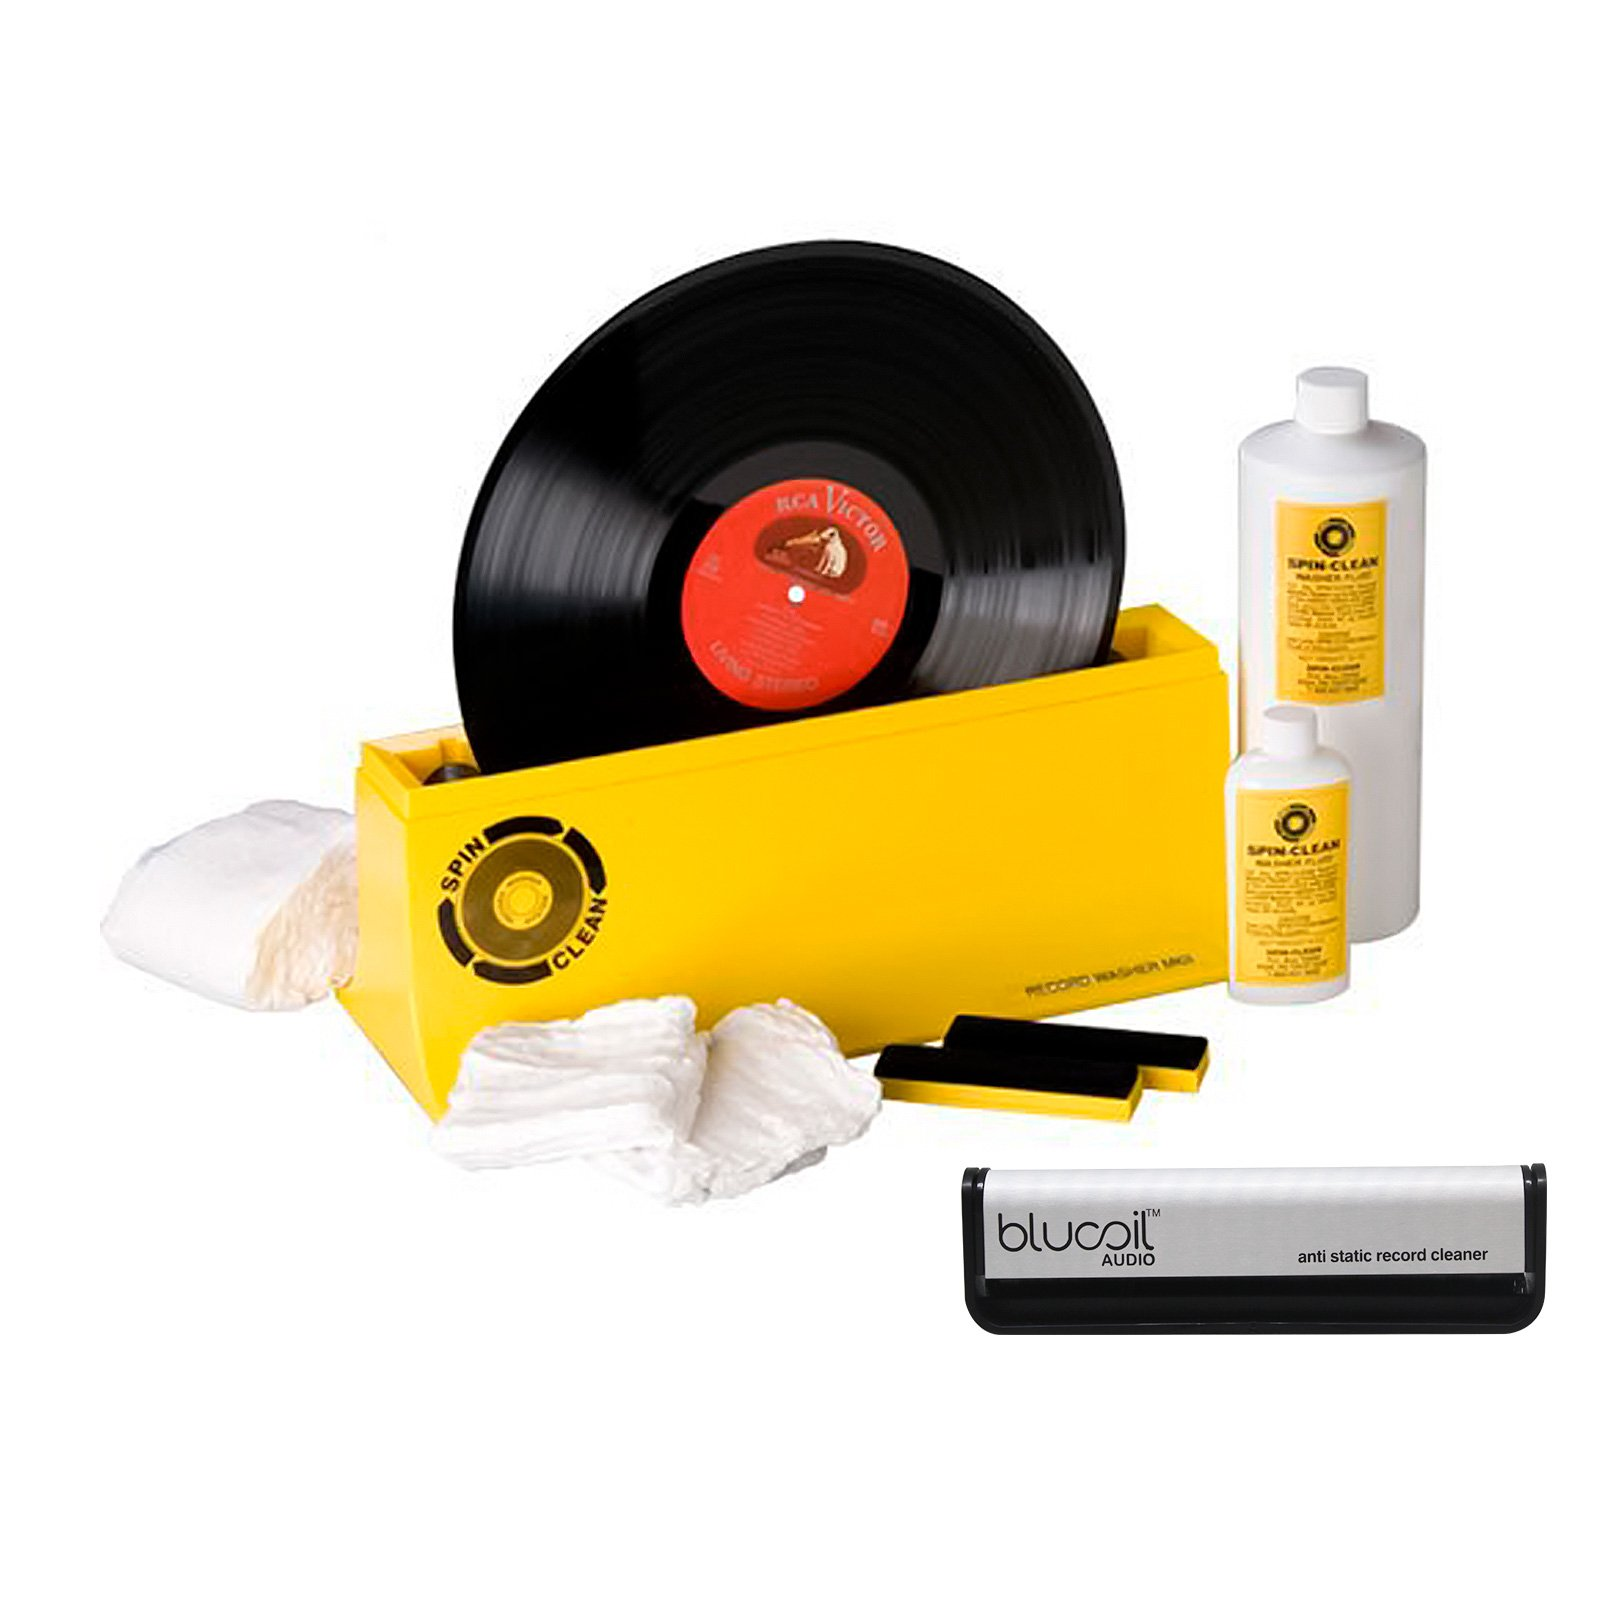 Spin Clean - Complete Record Washer System Mk2 - PLUS - Blucoil Audio Anti-Static Carbon Fiber Vinyl LP Record Cleaning Brush